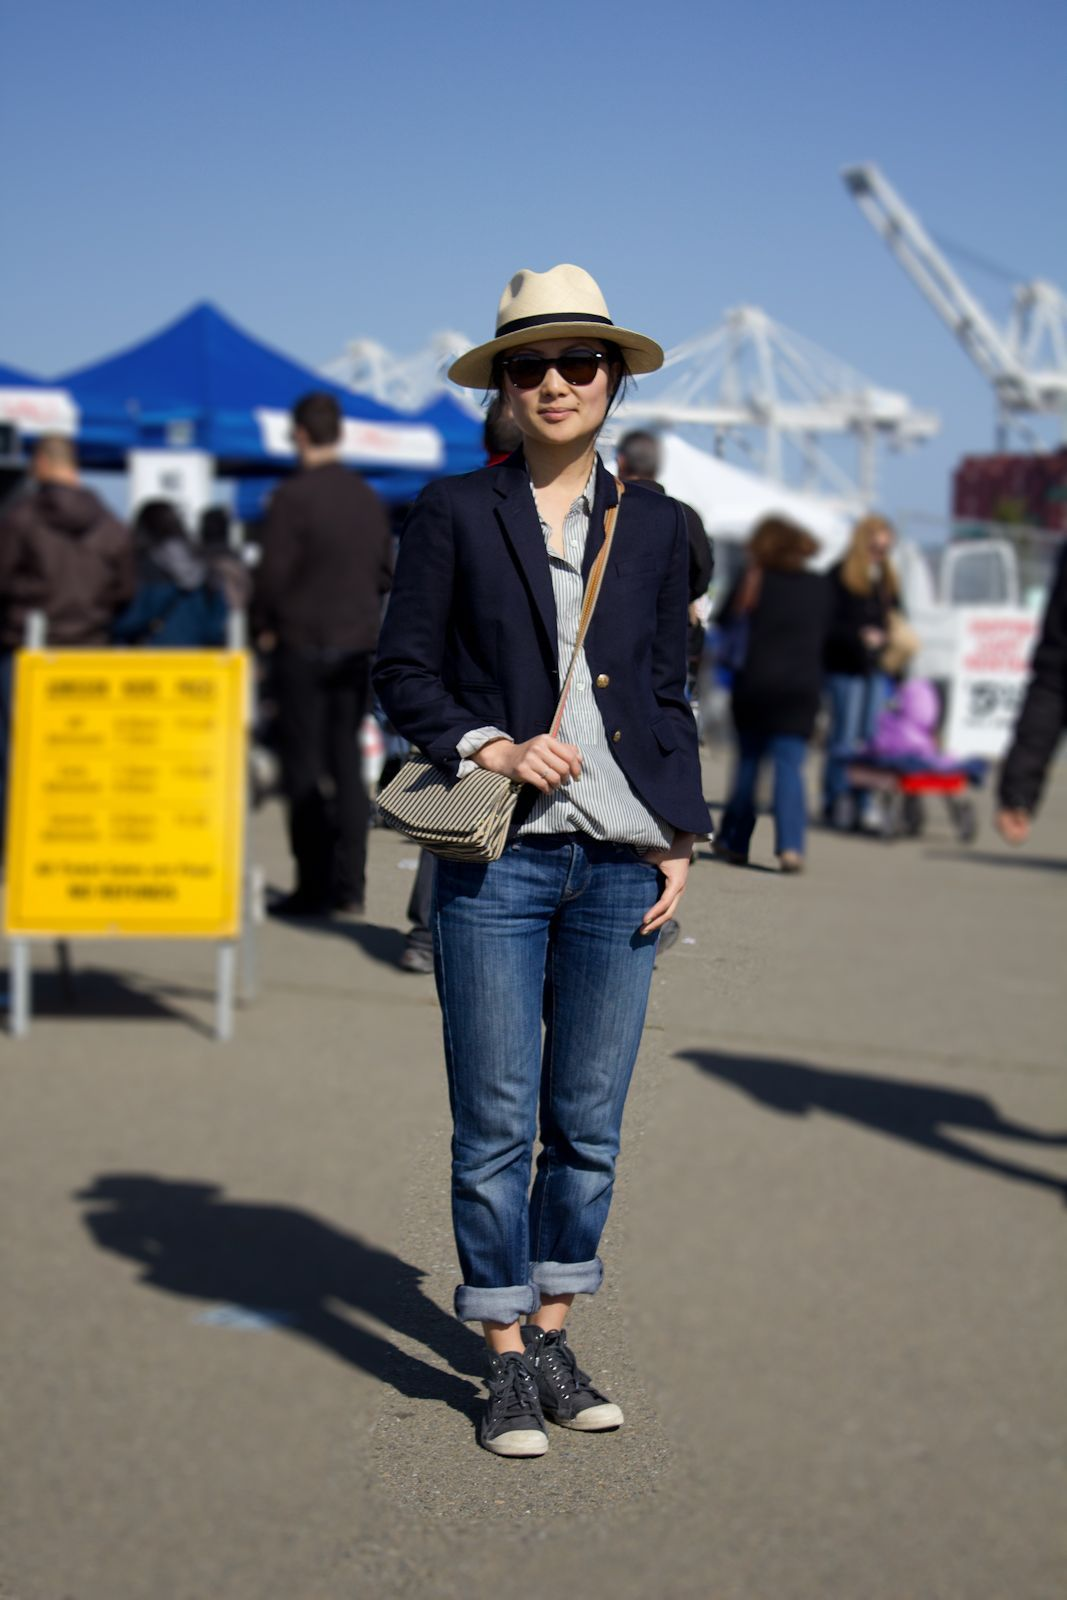 Alameda Flea Market Pictures – San Francisco Street Style